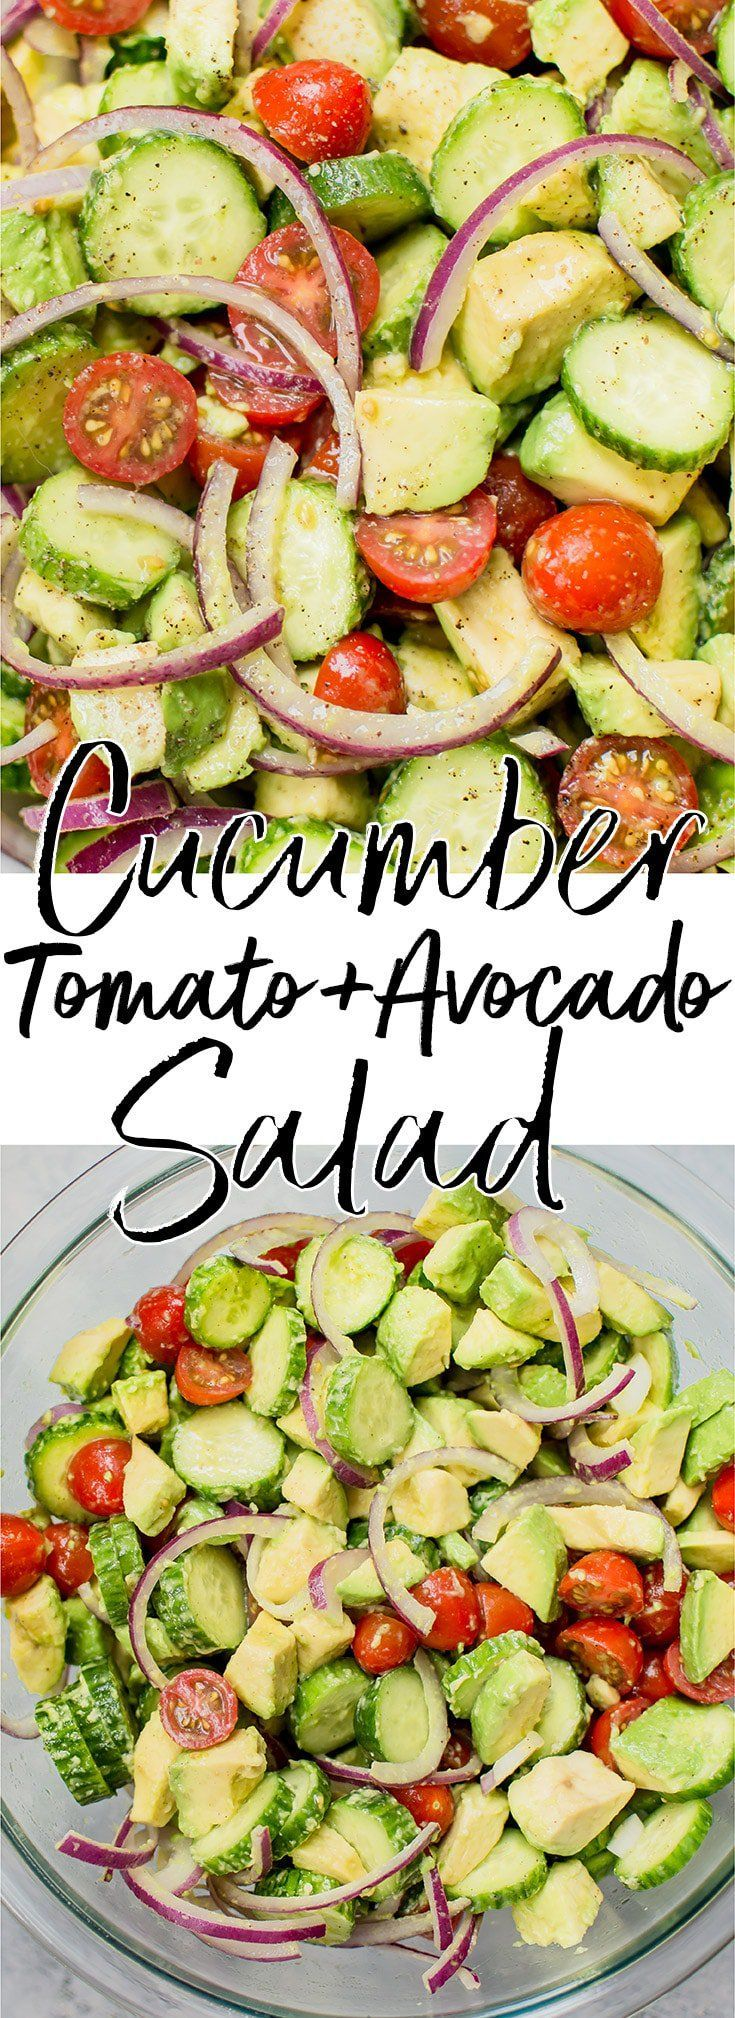 This easy cucumber tomato avocado salad is healthy, fresh, and bursting with flavor. It comes together fast and uses everyday ingredients. #cucumbersalad #tomatosalad #avocadosalad #veganrecipe #saladrecipe #vegetarianrecipe #healthyrecipe